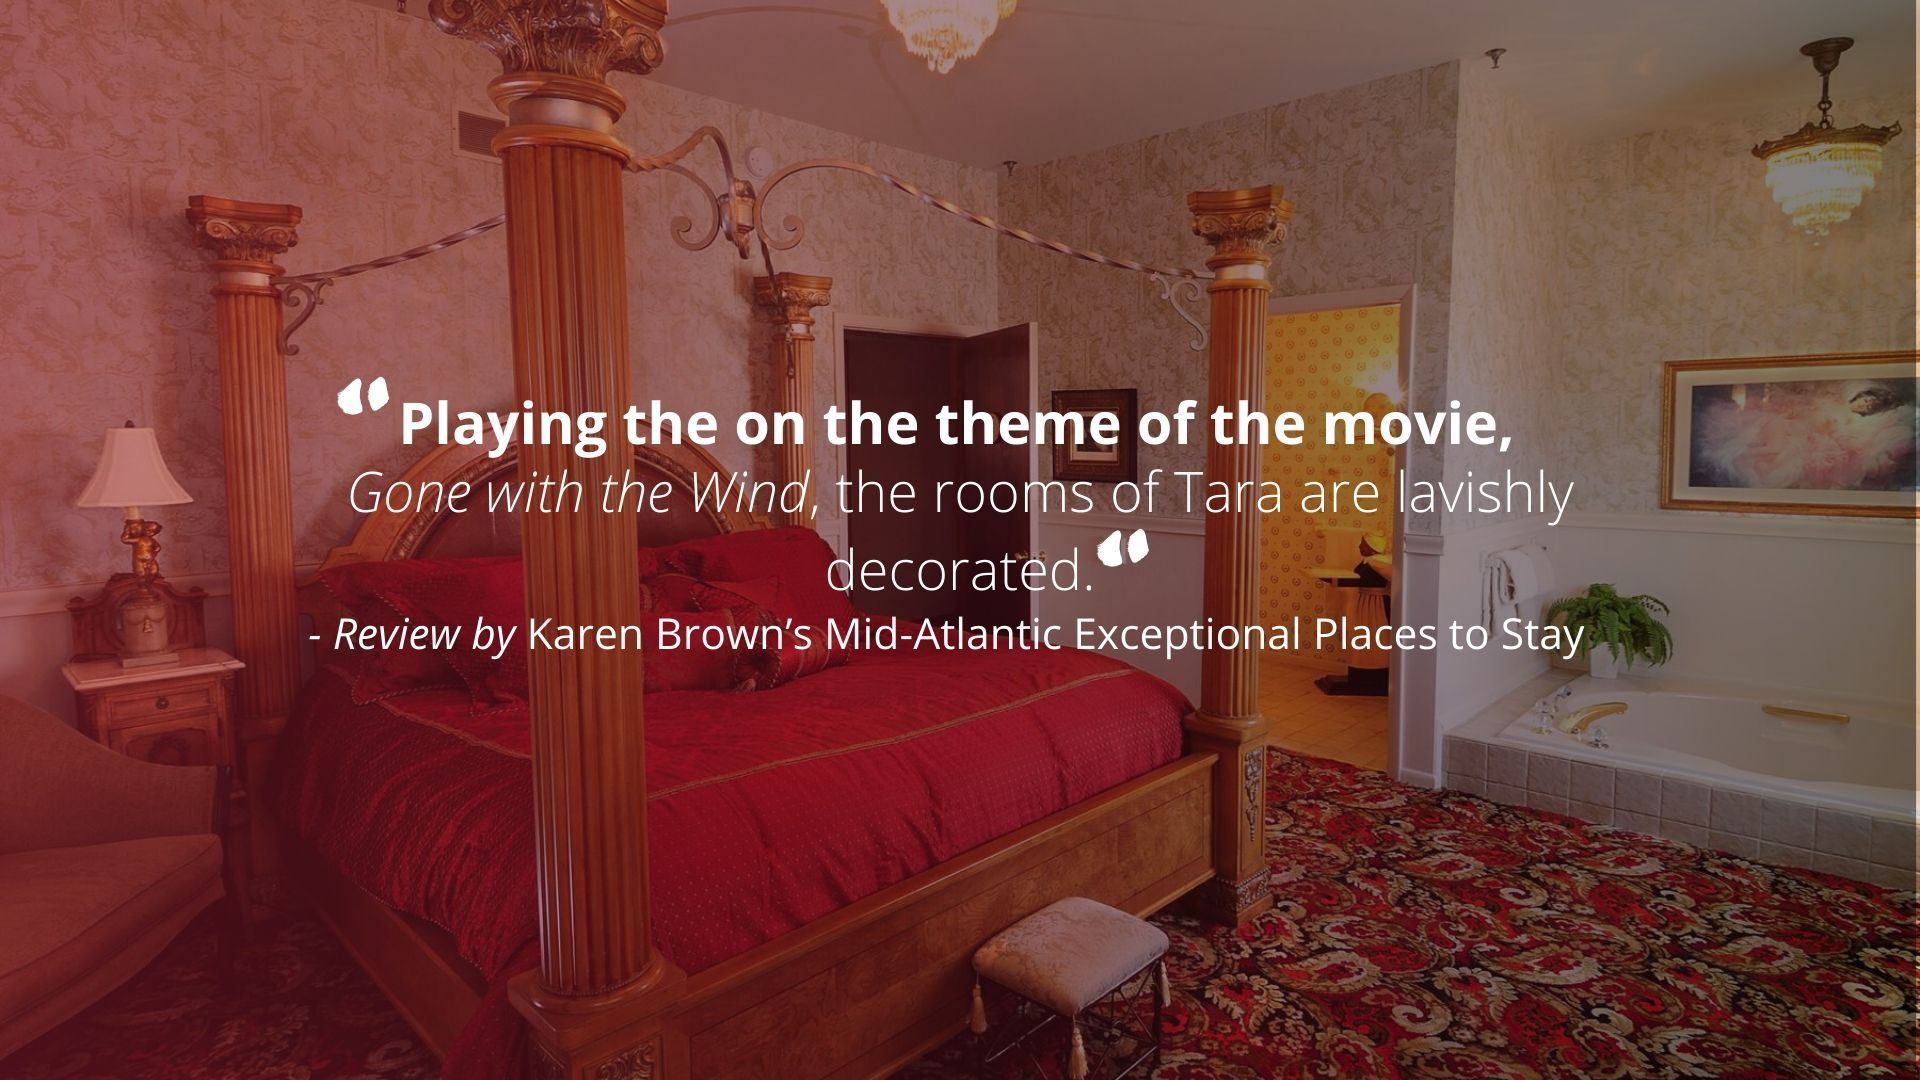 """Playing on the theme of the movie, Gone with the Wind, the rooms of Tara are lavishly decorated."" - Review by Karen Brown's Mid-Atlantic Exceptional Places to Stay"